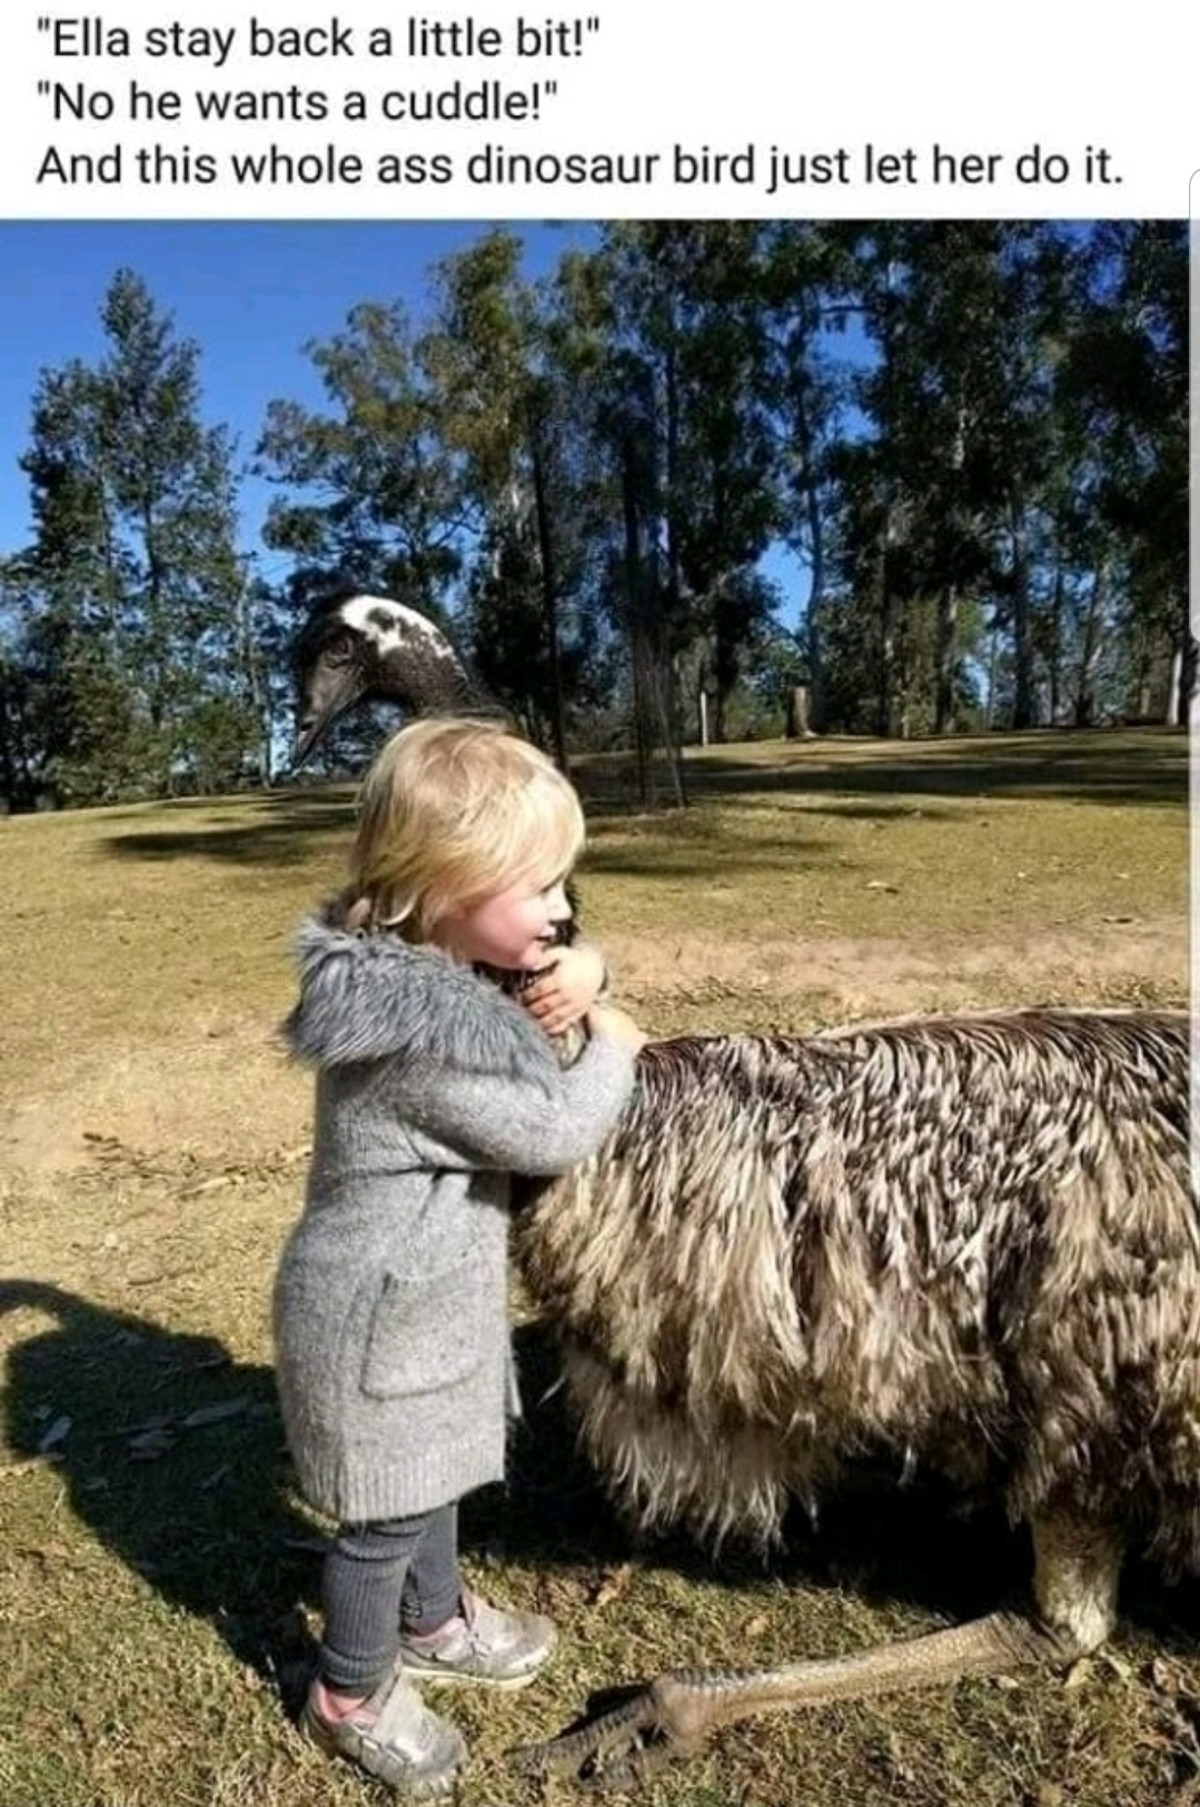 Big Bird. .. WHAT ARE YOU DOING. THATS AN EMU. YOUR KID GONNA GET HALVED